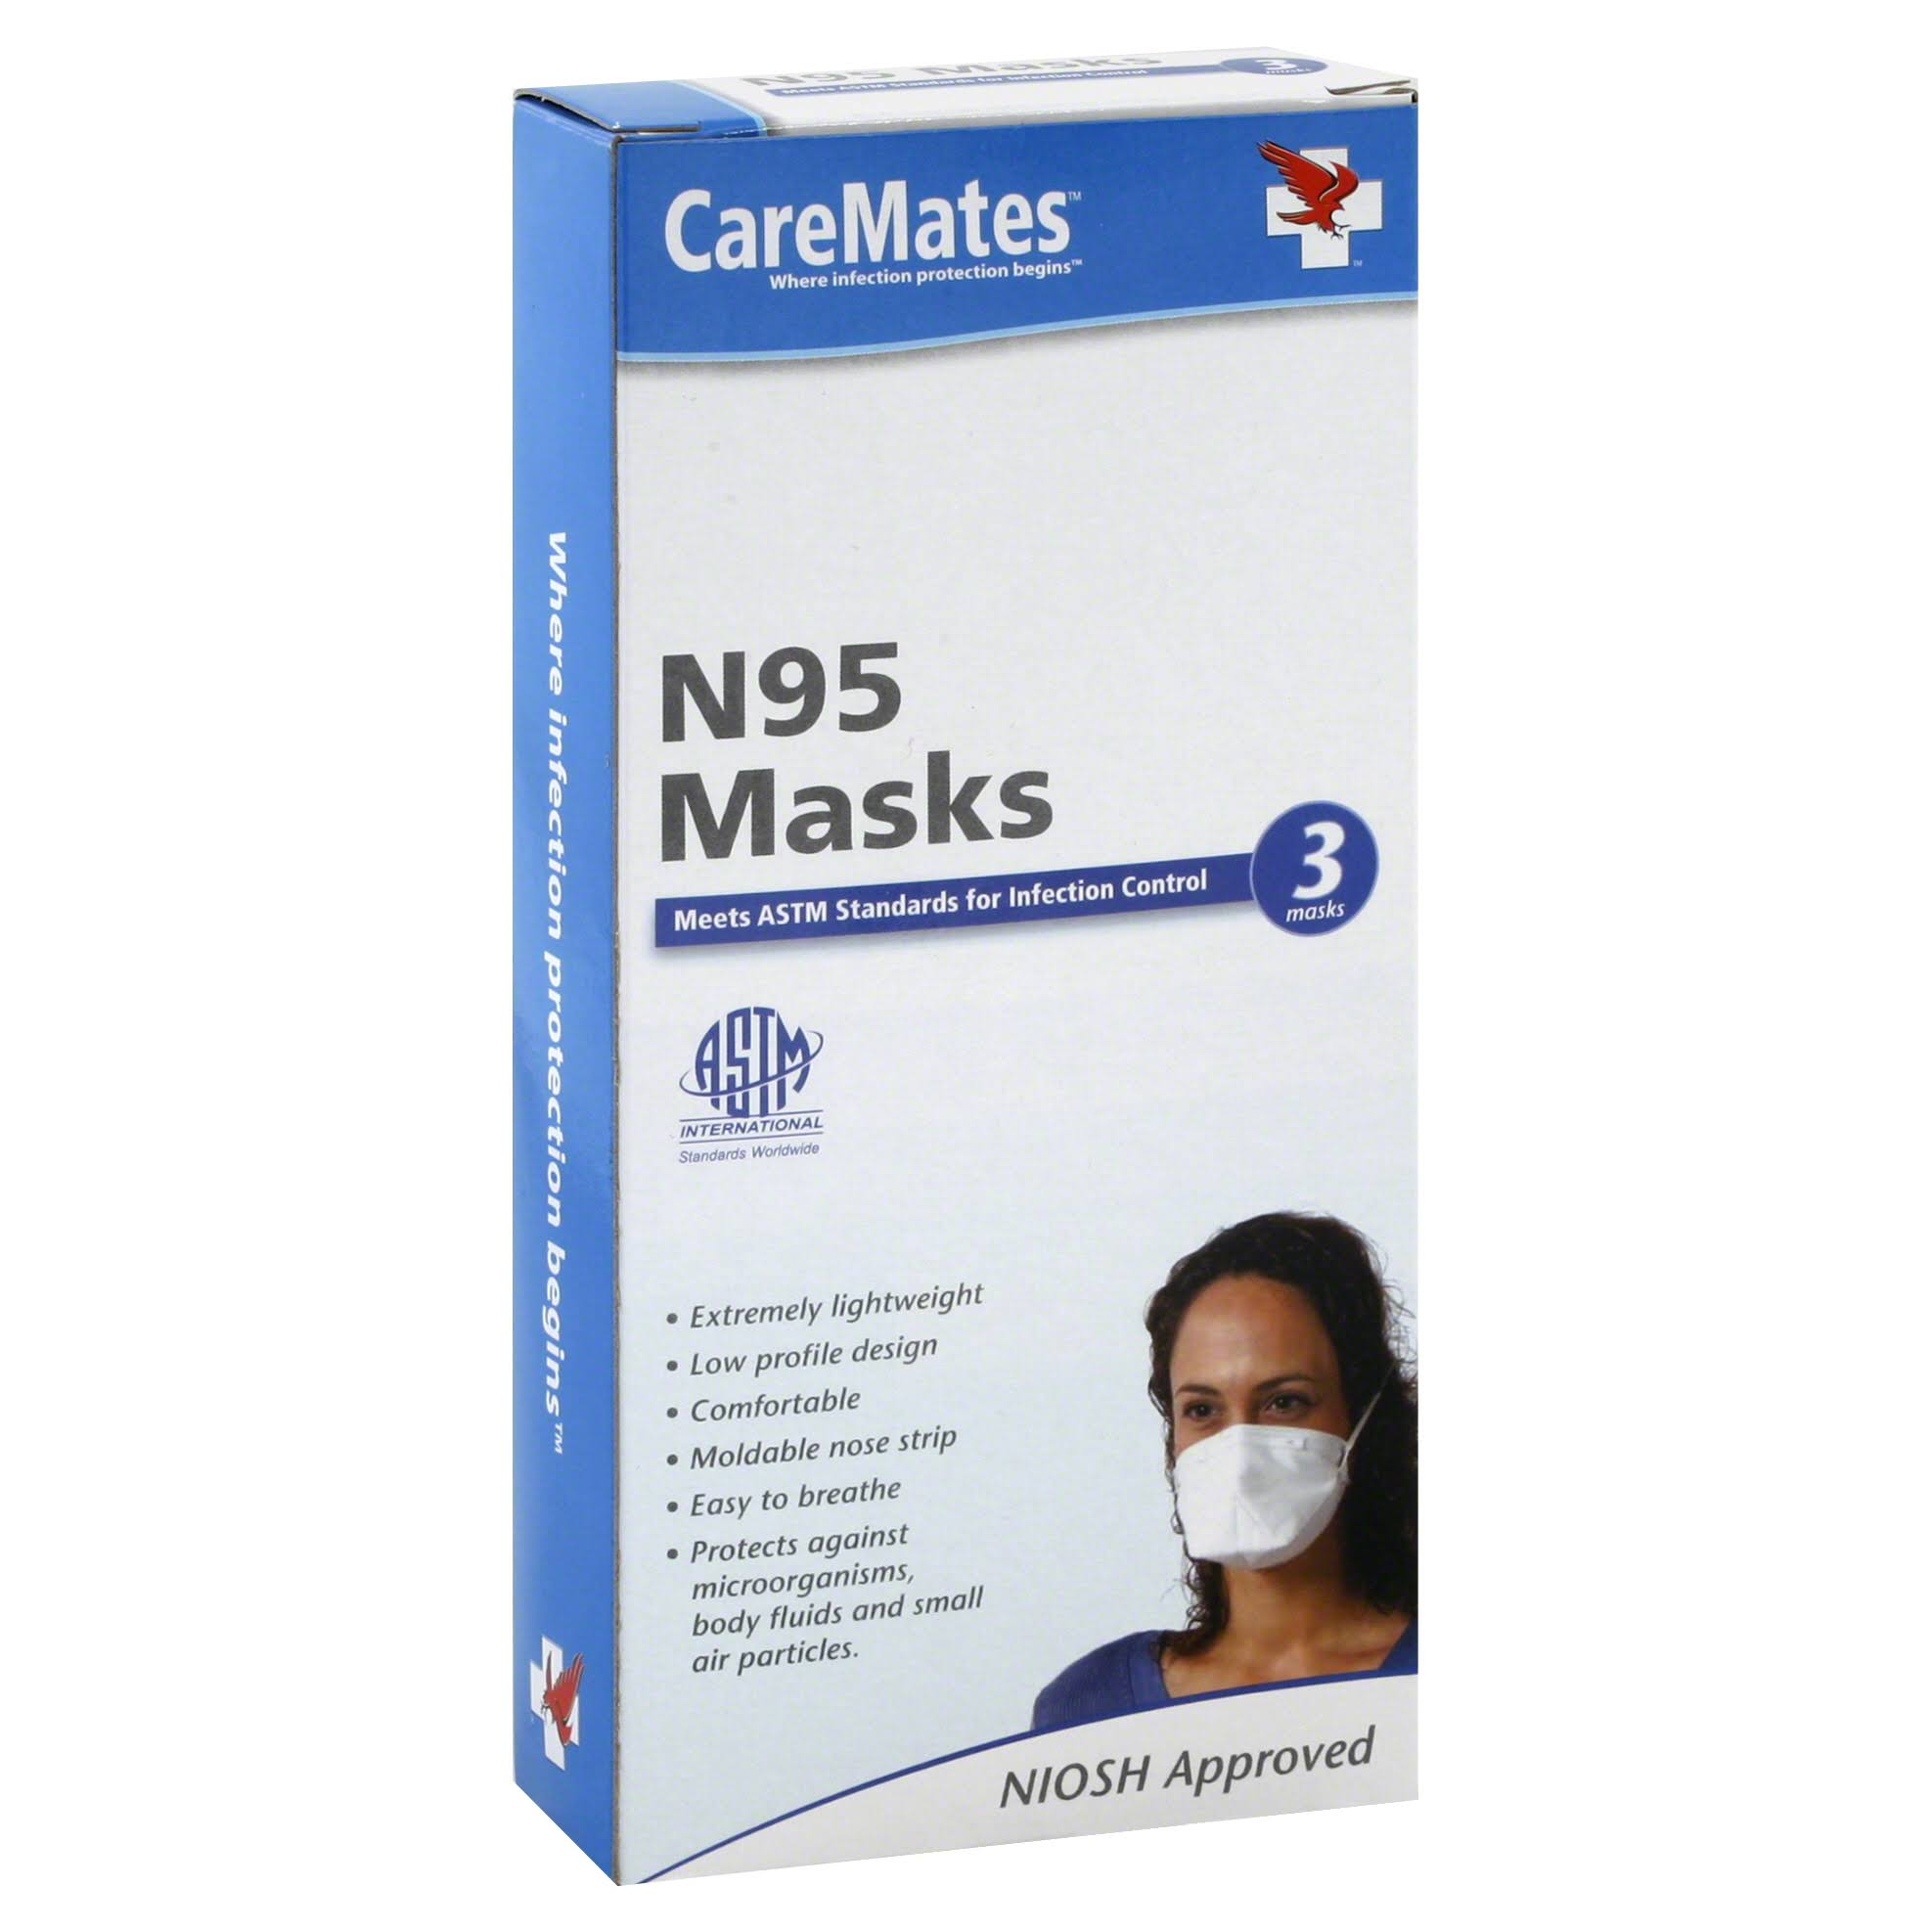 CareMates Masks, N95 - 3 masks